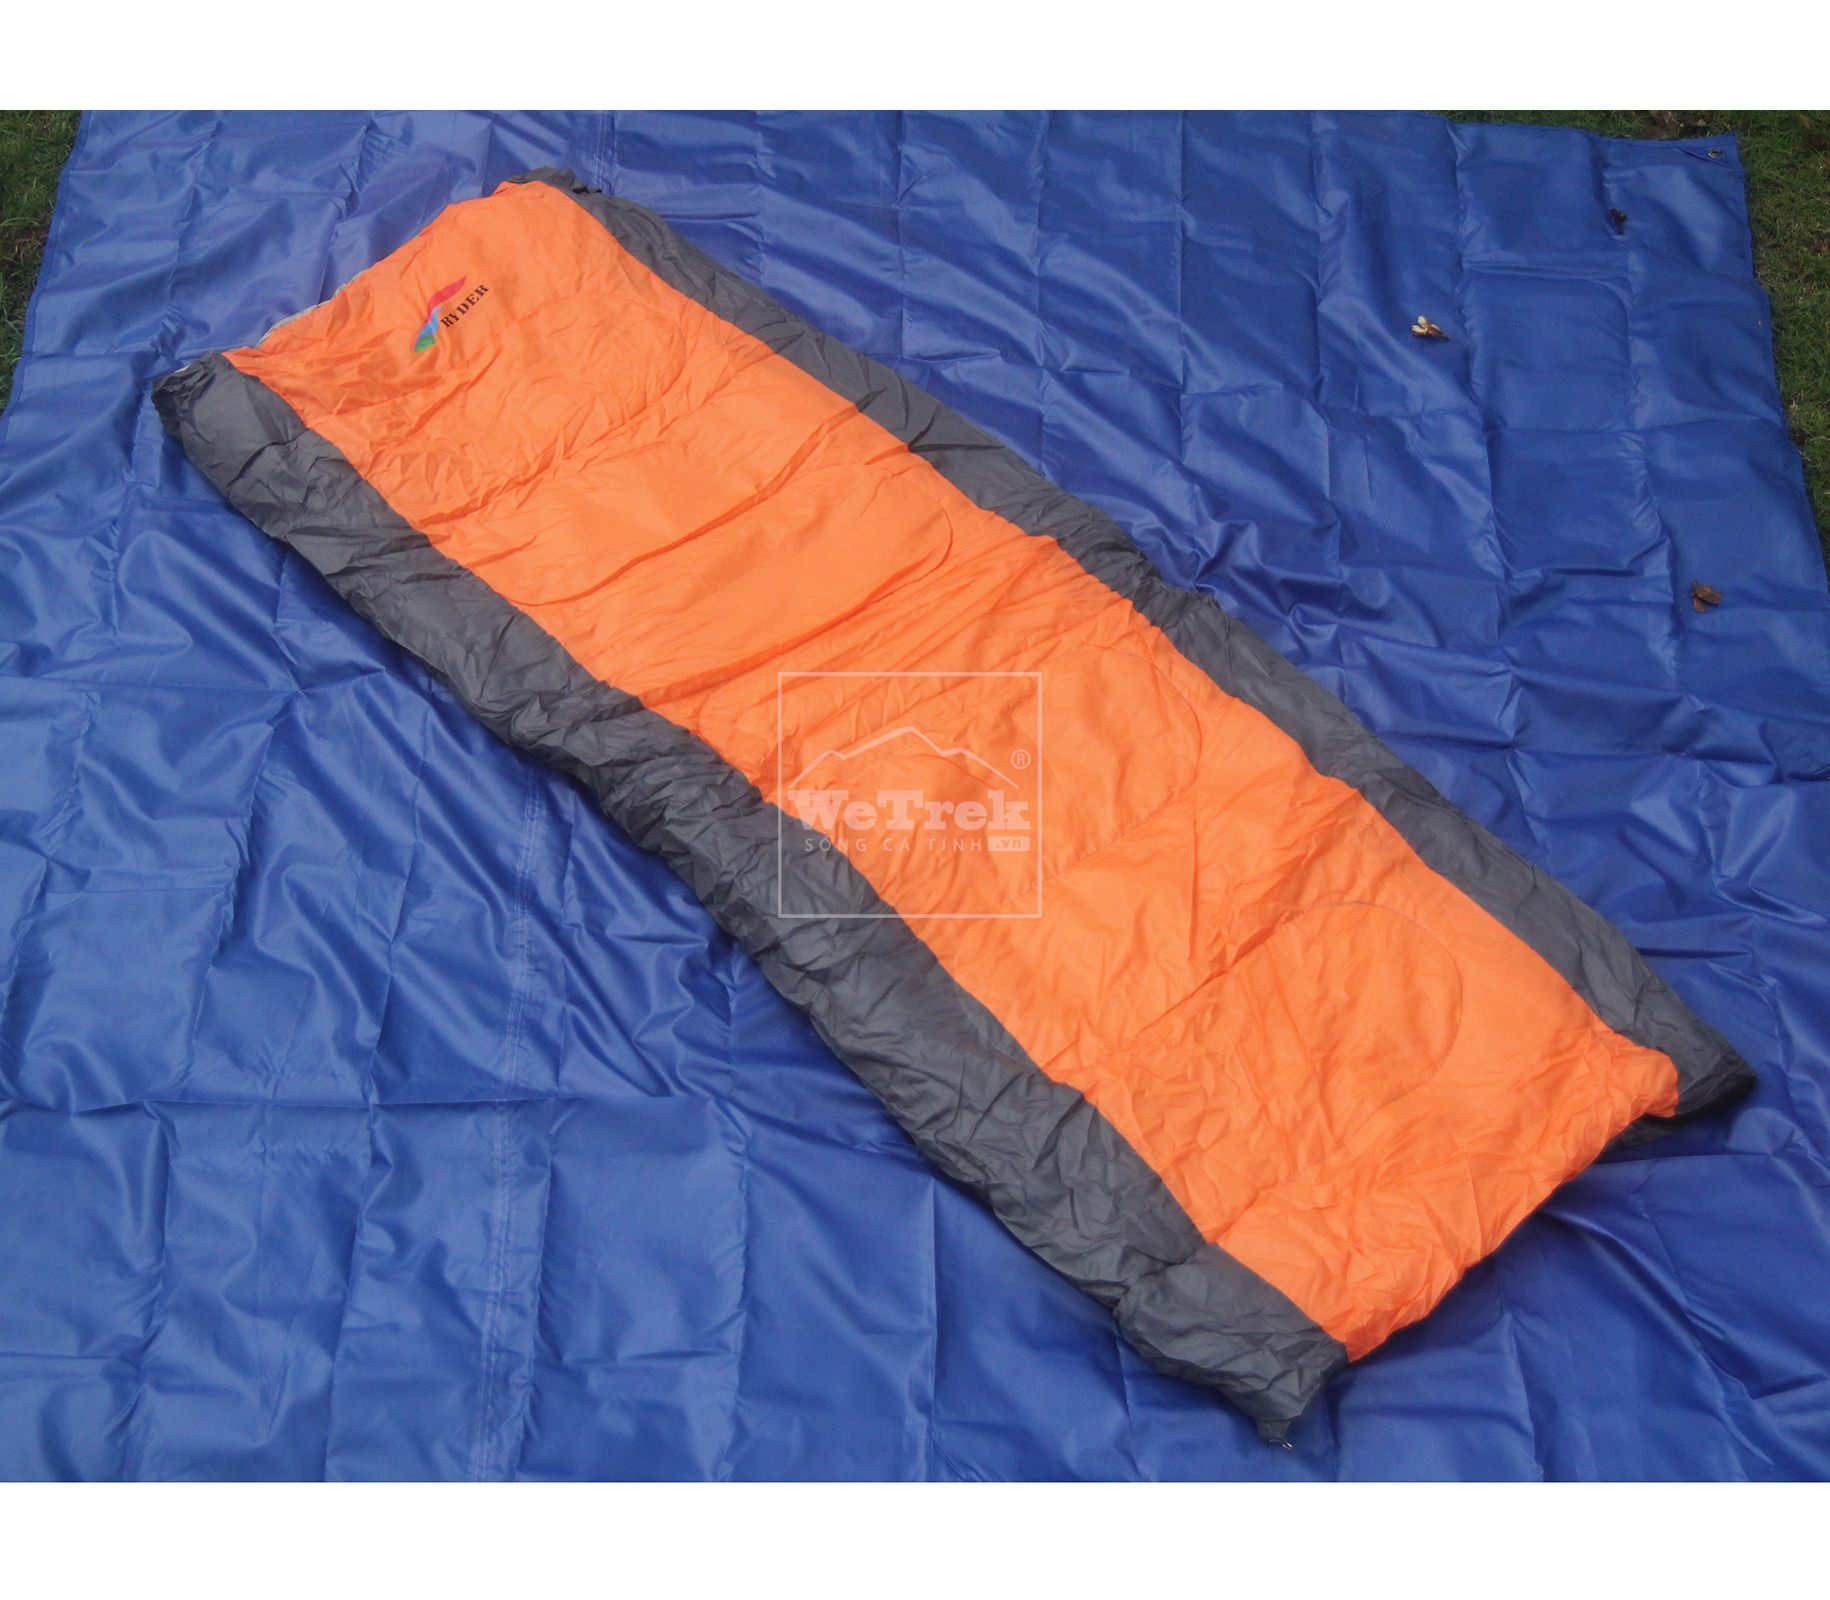 tui-ngu-ryder-envelope-sleeping-bag-d1001-orange-7482-wetrek.vn-3